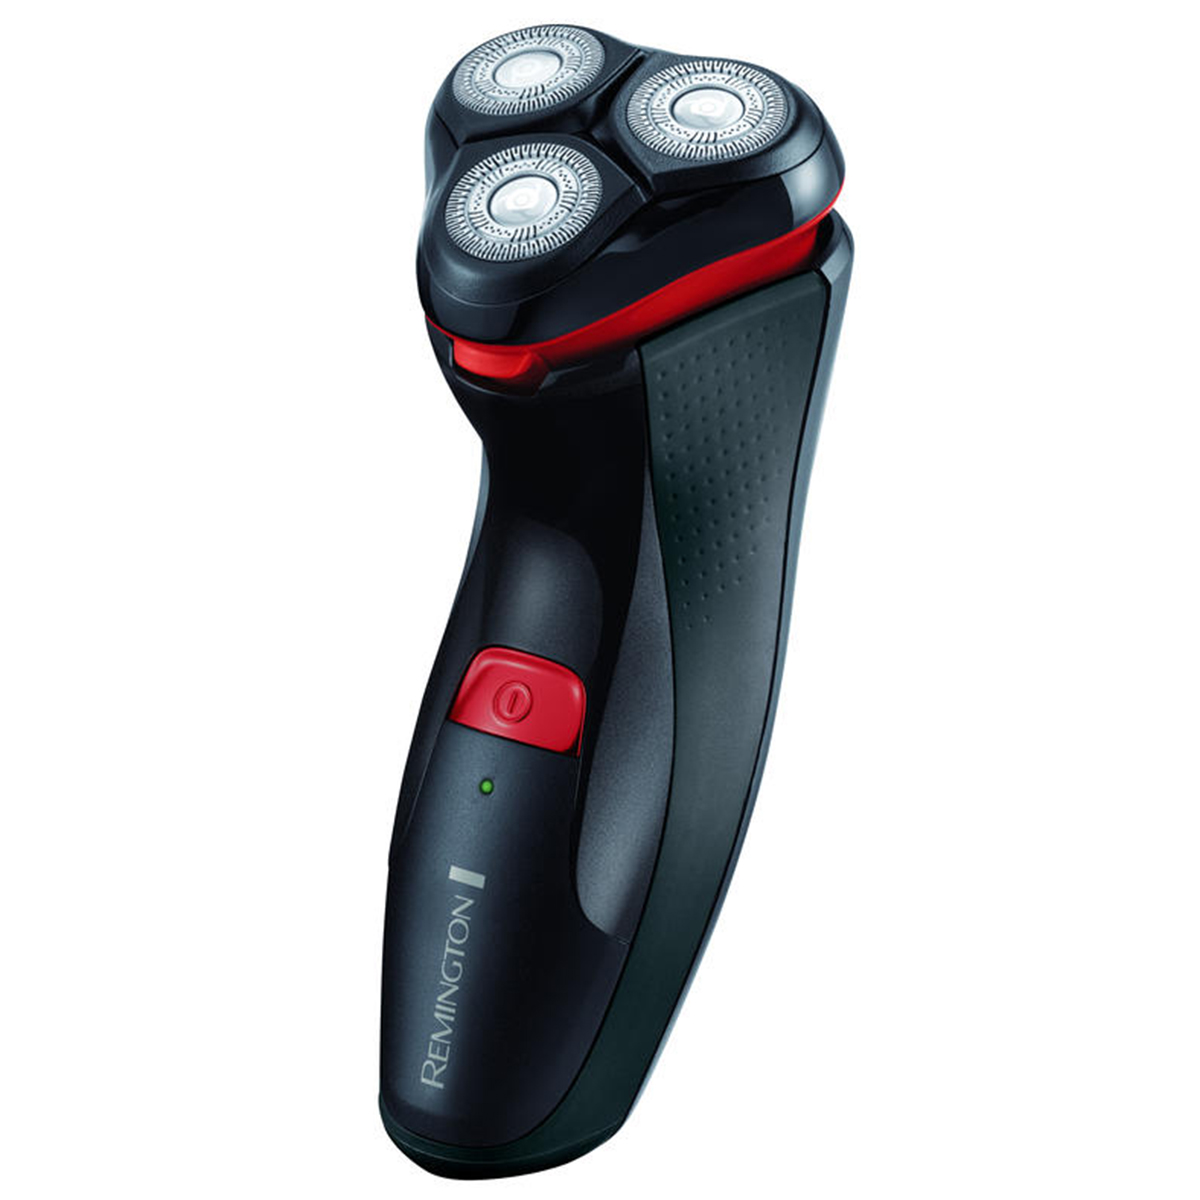 Remington barbermaskine - PR1370 Power Series